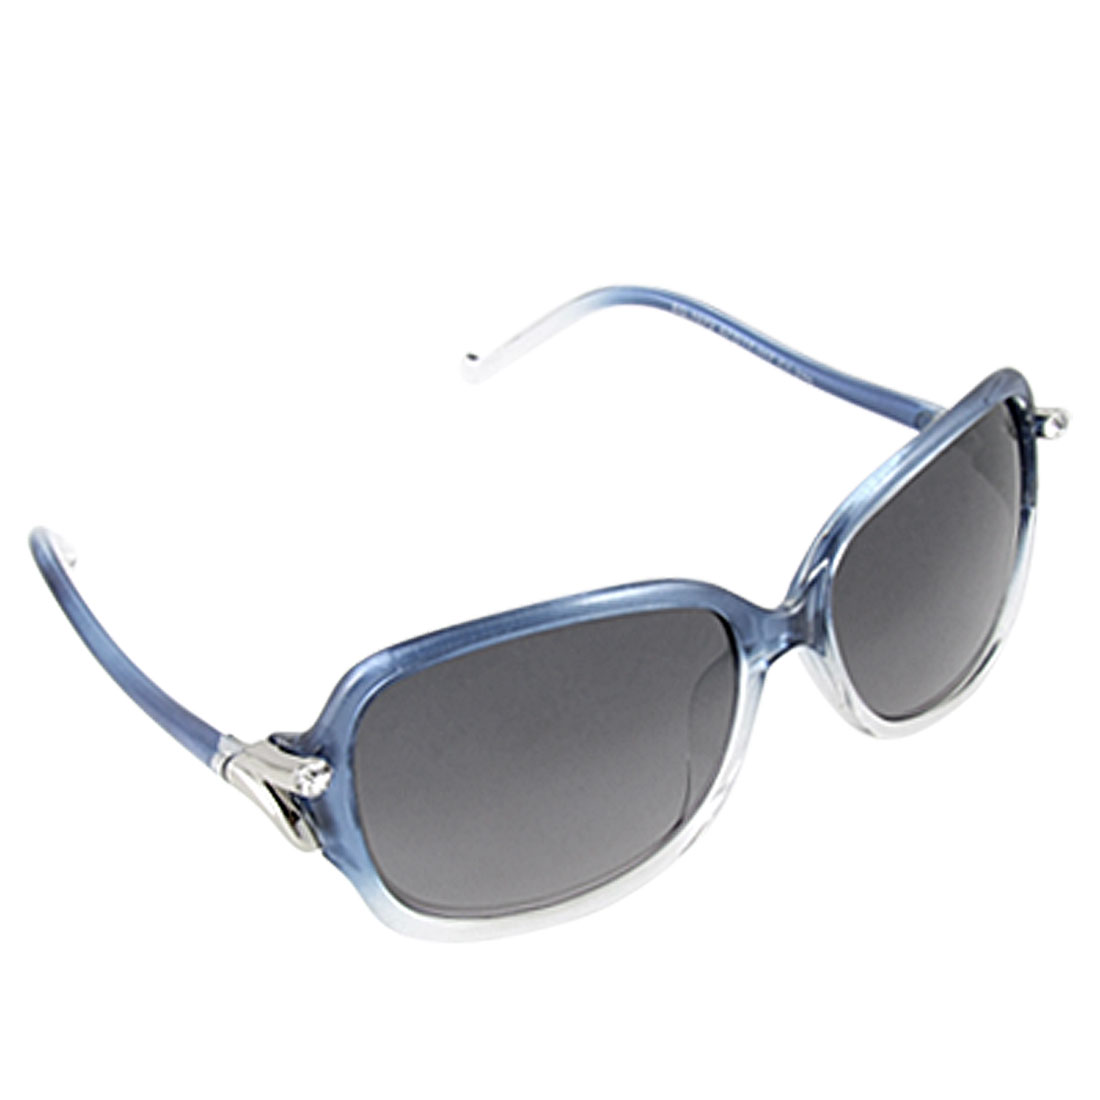 Blue Plastic Slim Arms Letter Z Hinge Ladies UV Protection Sunglasses